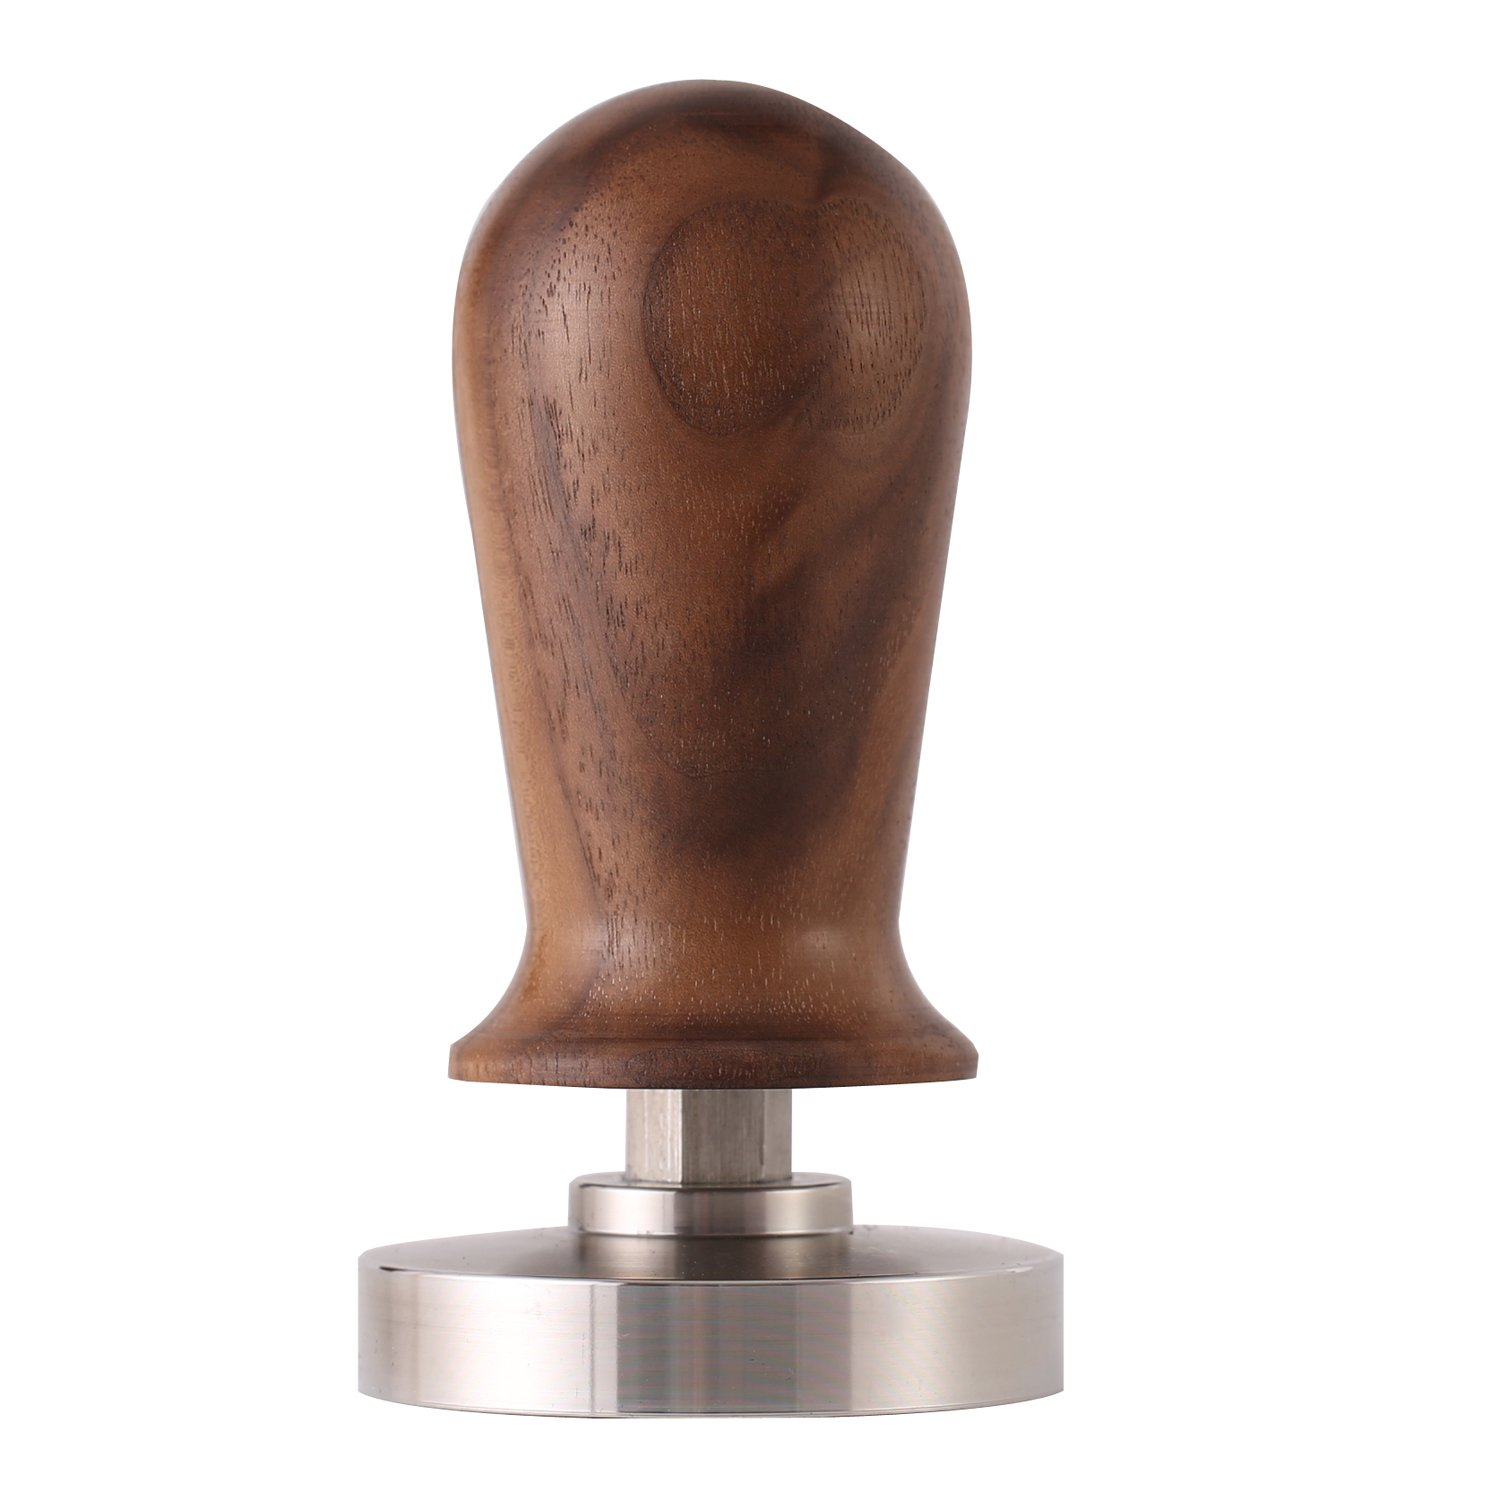 Espresso Coffee Tamper 54mm with Stainless Steel Flat Base and Black Walnut Handle by Dfamy